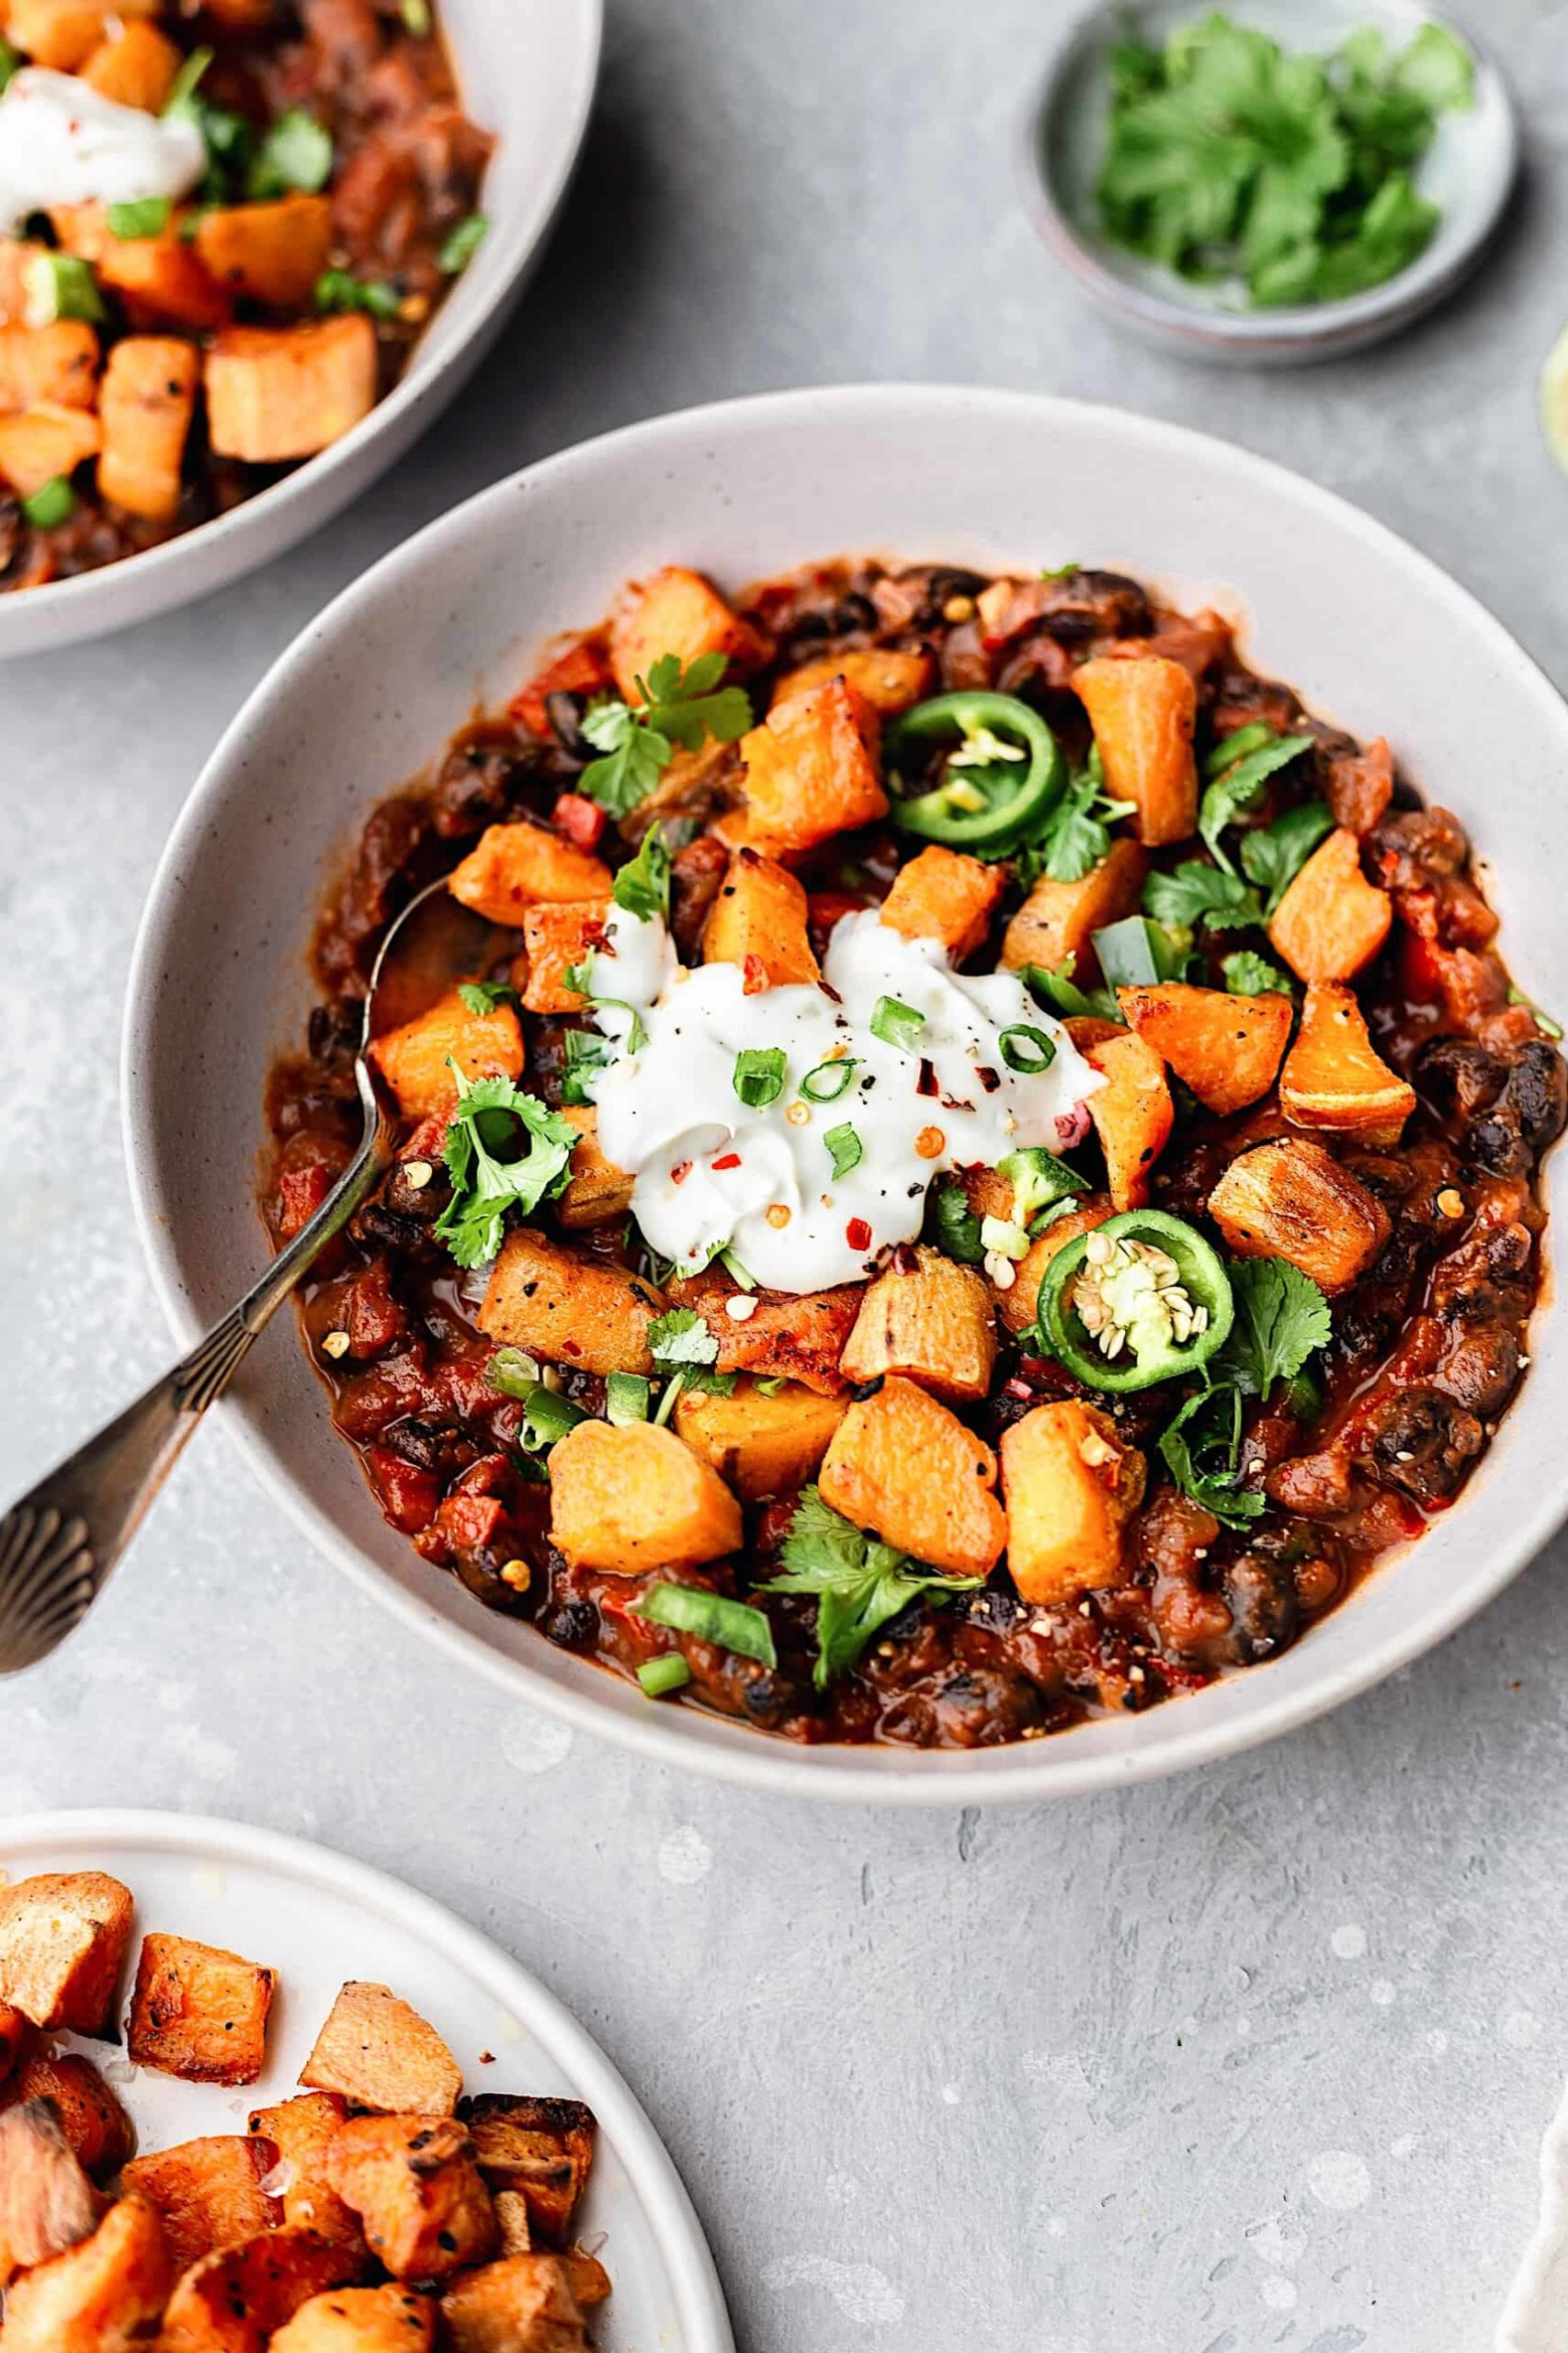 Awesome black bean recipes: This Black Bean Chipotle Chili from Cupful of Kale is perfect for freezing and enjoying later.